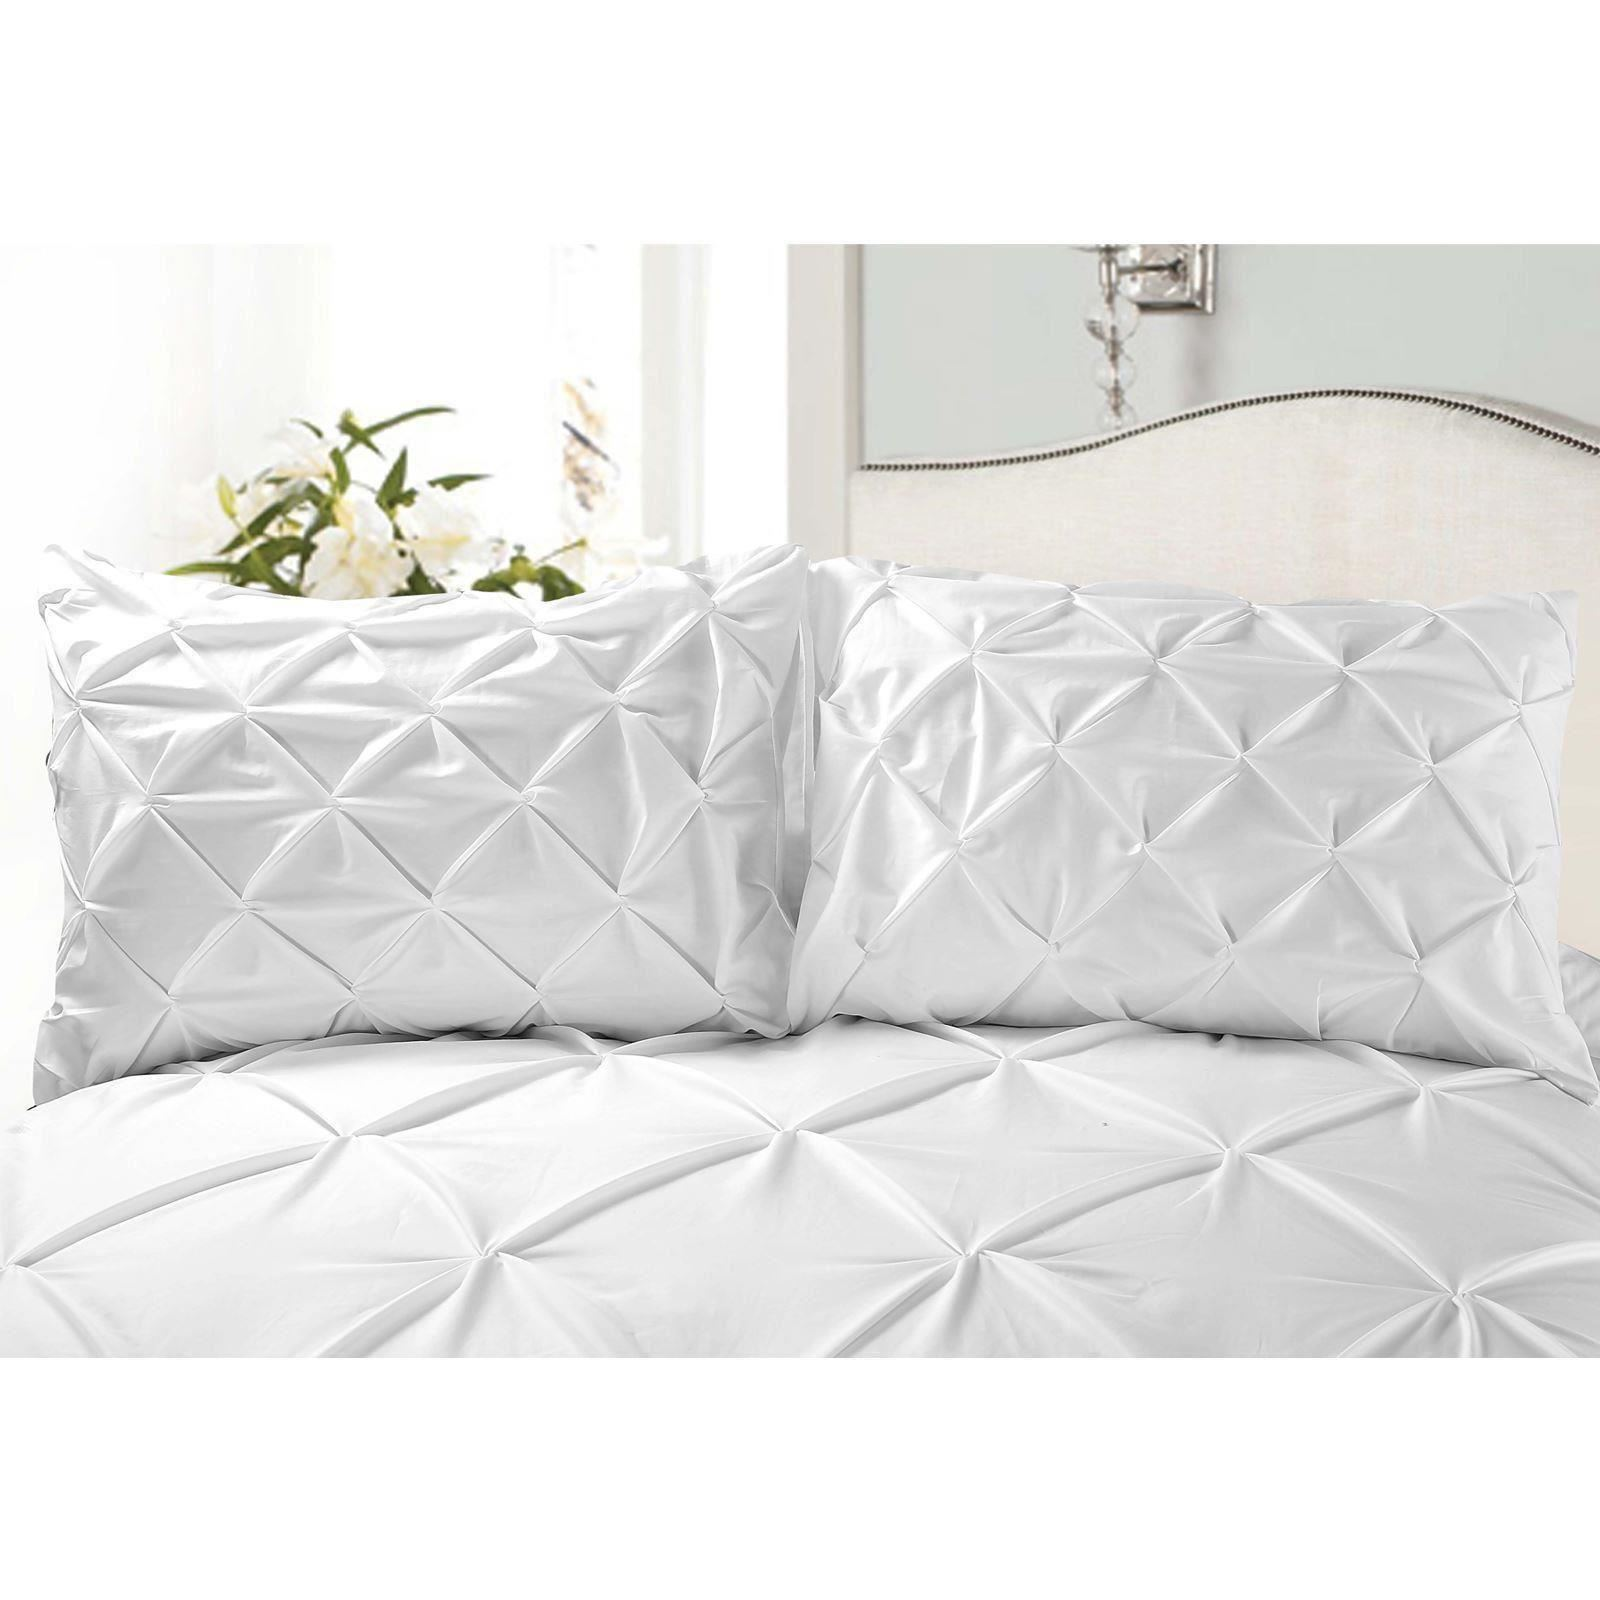 line deals at piece cheap alibaba high guides white bedding fancy full find set shopping quotations cover pleated class duvet pinched com get queen pleat on